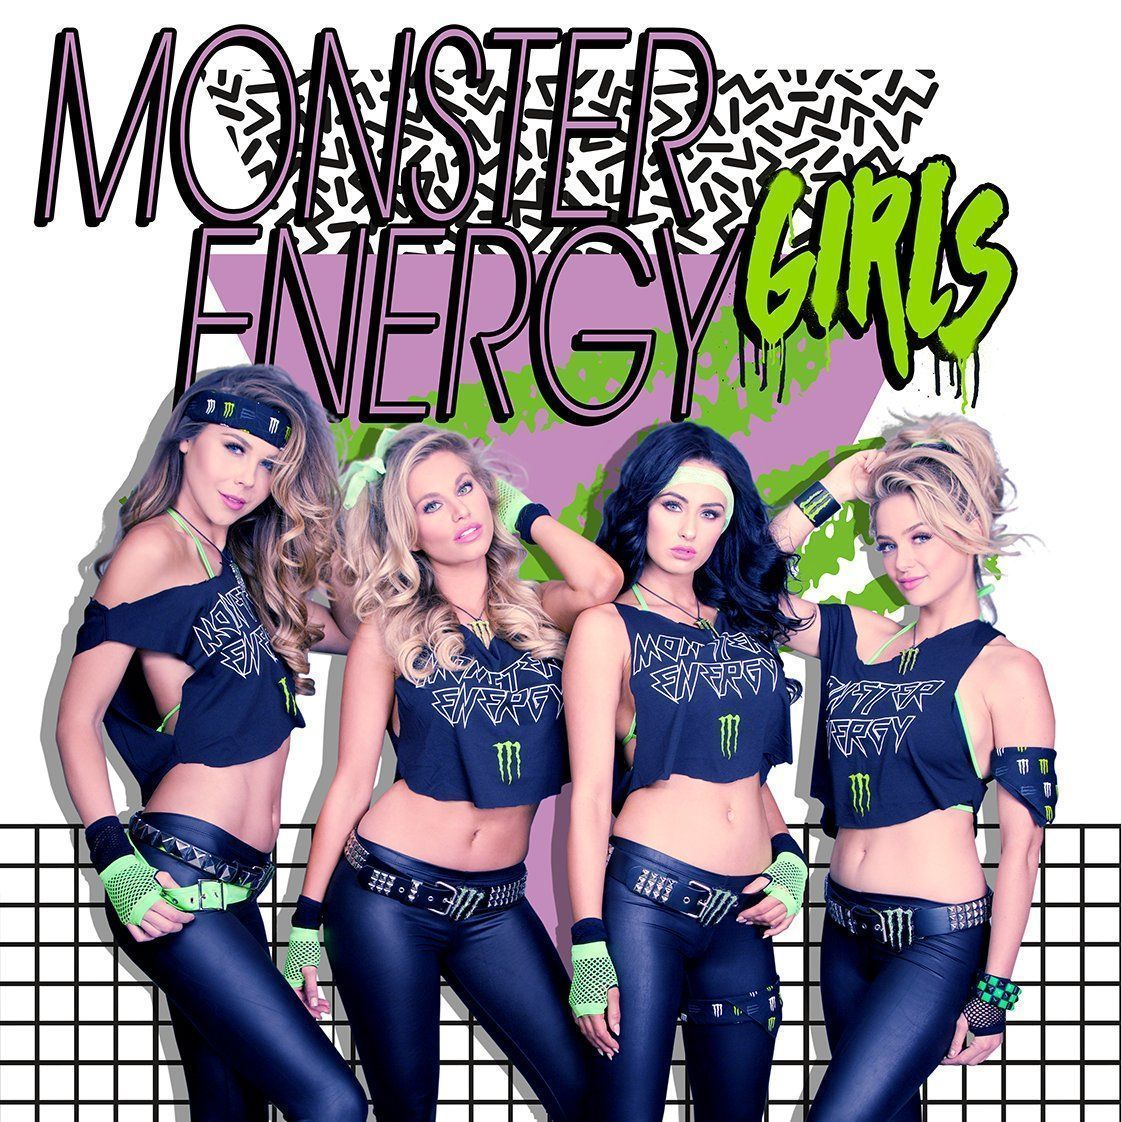 2017 Monster Energy Girls Throwback Outfits for Darlington #throwbackoutfits 2017 Monster Energy Girls throwback outfits for Darlington Raceway. View the Monster Girls promo photos for the Southern 500 race. #throwbackoutfits 2017 Monster Energy Girls Throwback Outfits for Darlington #throwbackoutfits 2017 Monster Energy Girls throwback outfits for Darlington Raceway. View the Monster Girls promo photos for the Southern 500 race. #throwbackoutfits 2017 Monster Energy Girls Throwback Outfits for #throwbackoutfits